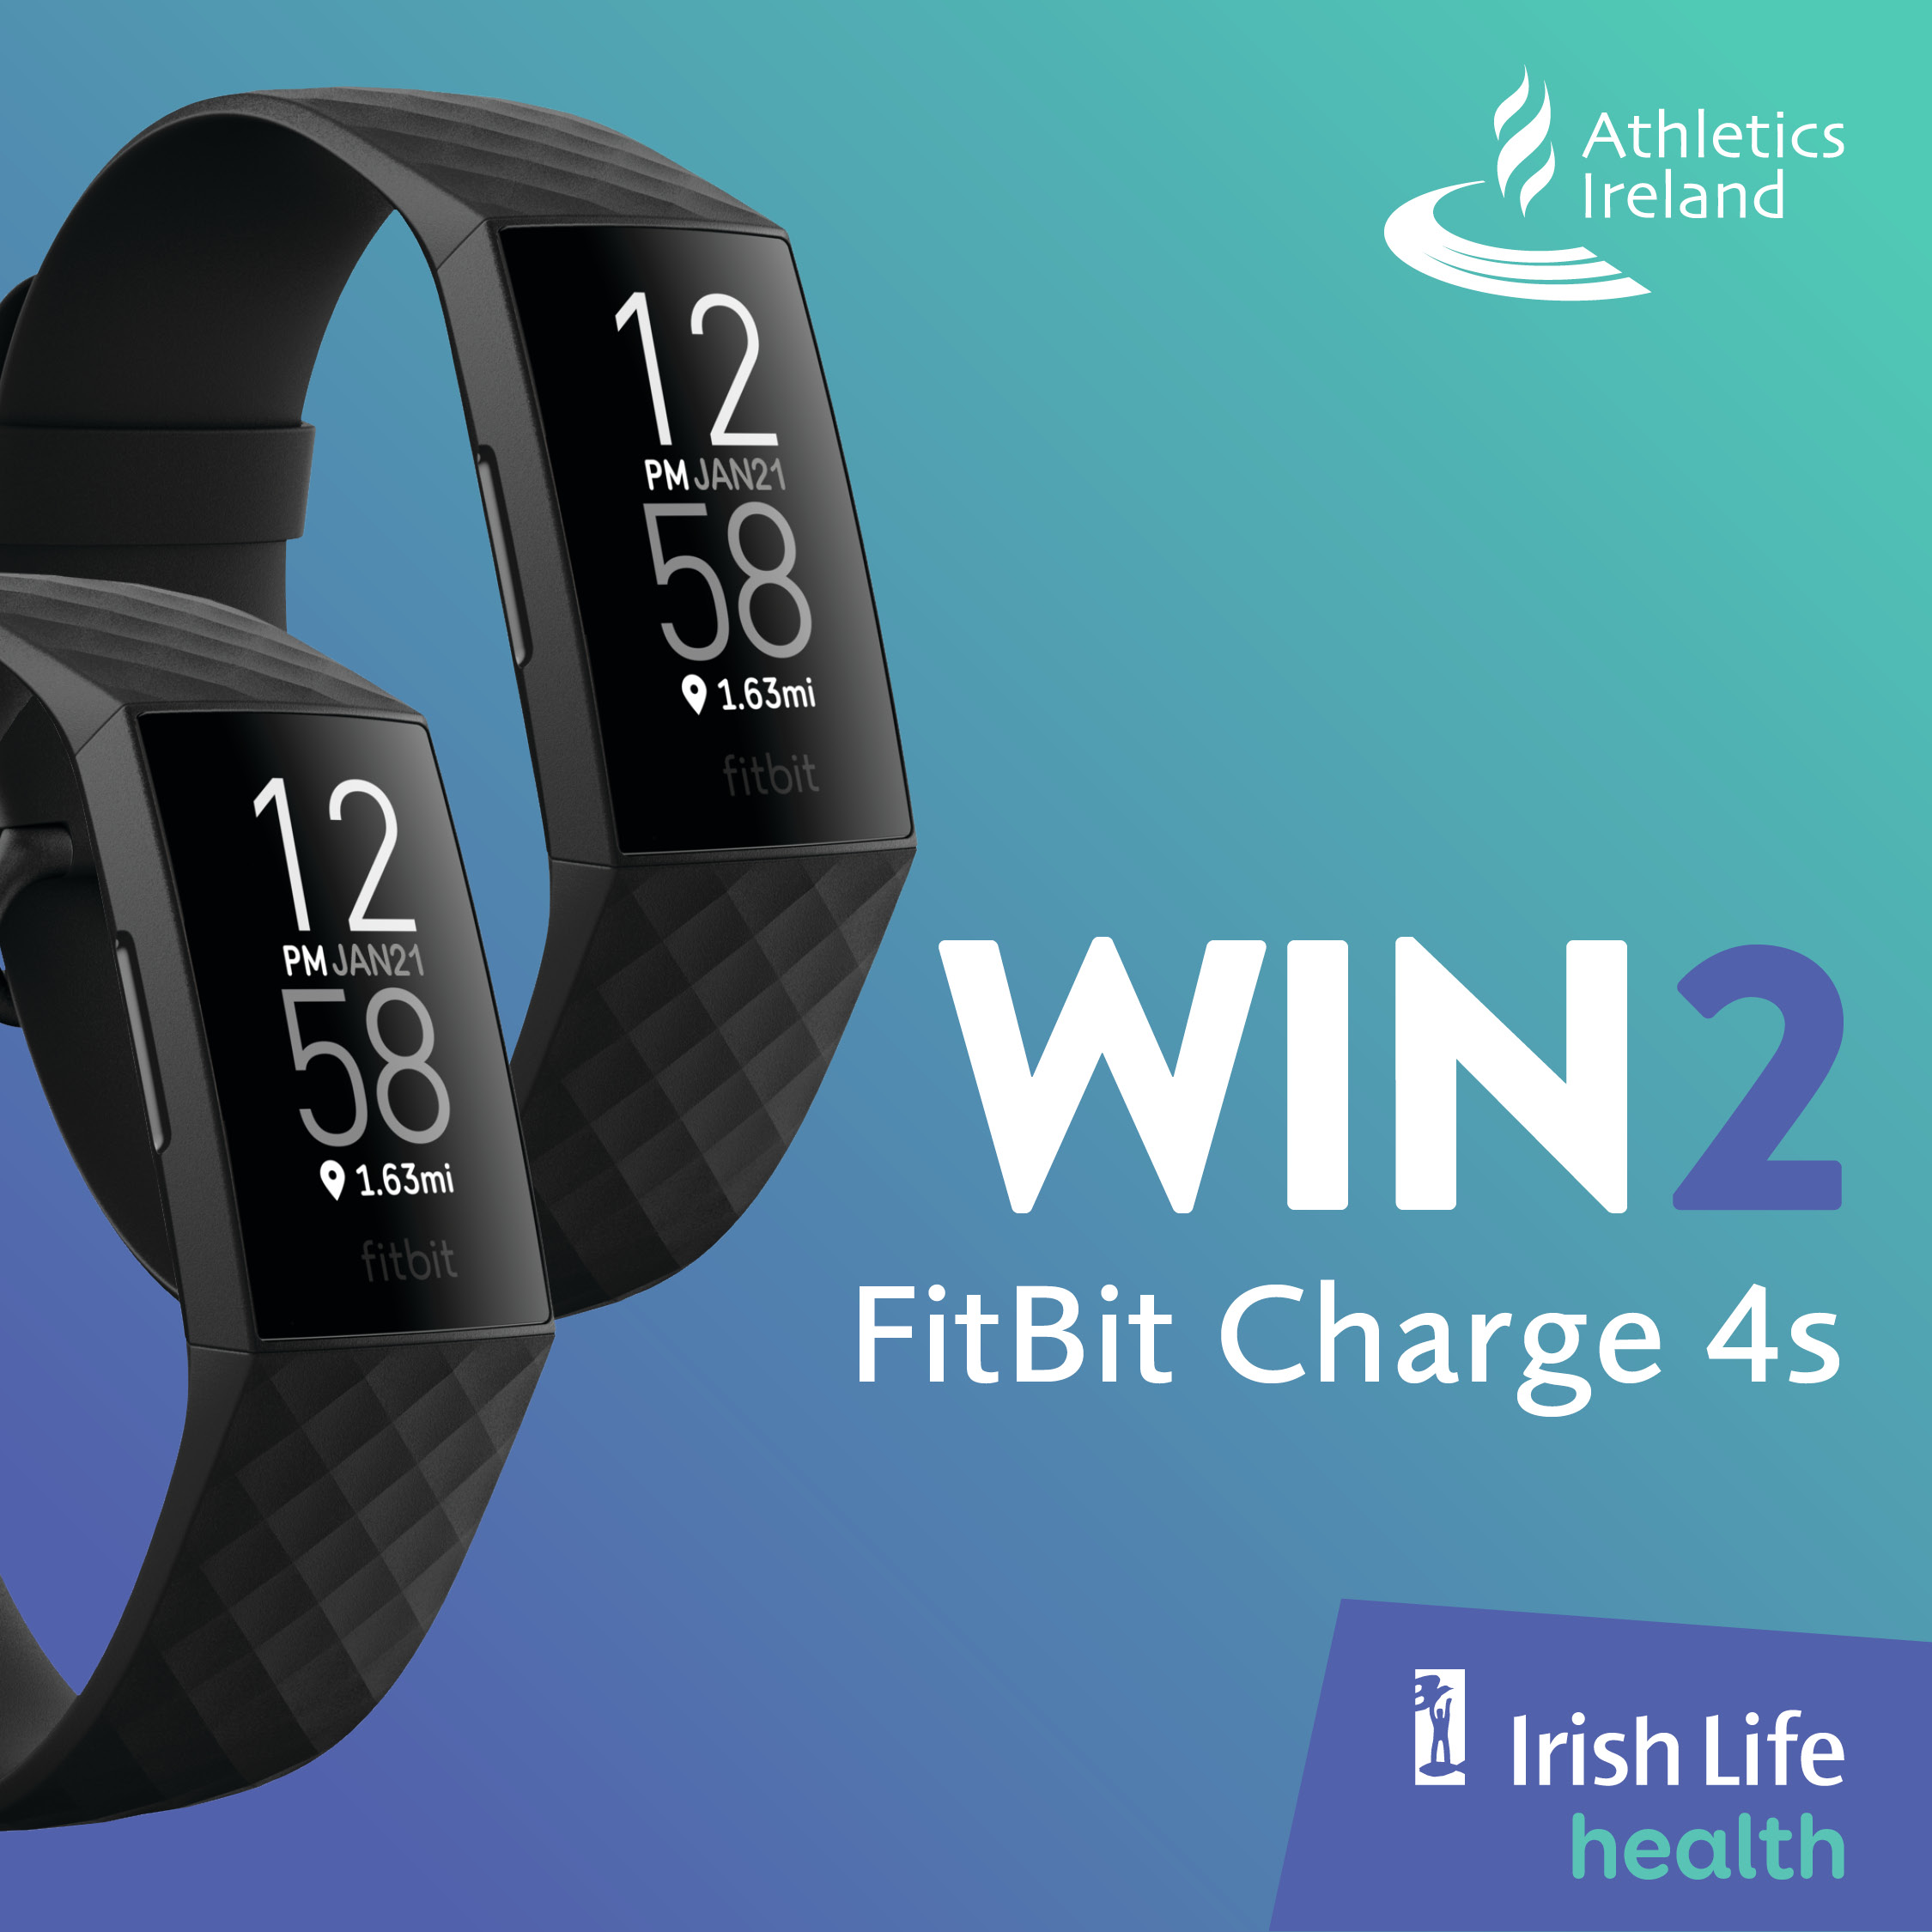 Win 2 FitBit Charge 4s with our official partner Irish Life Health